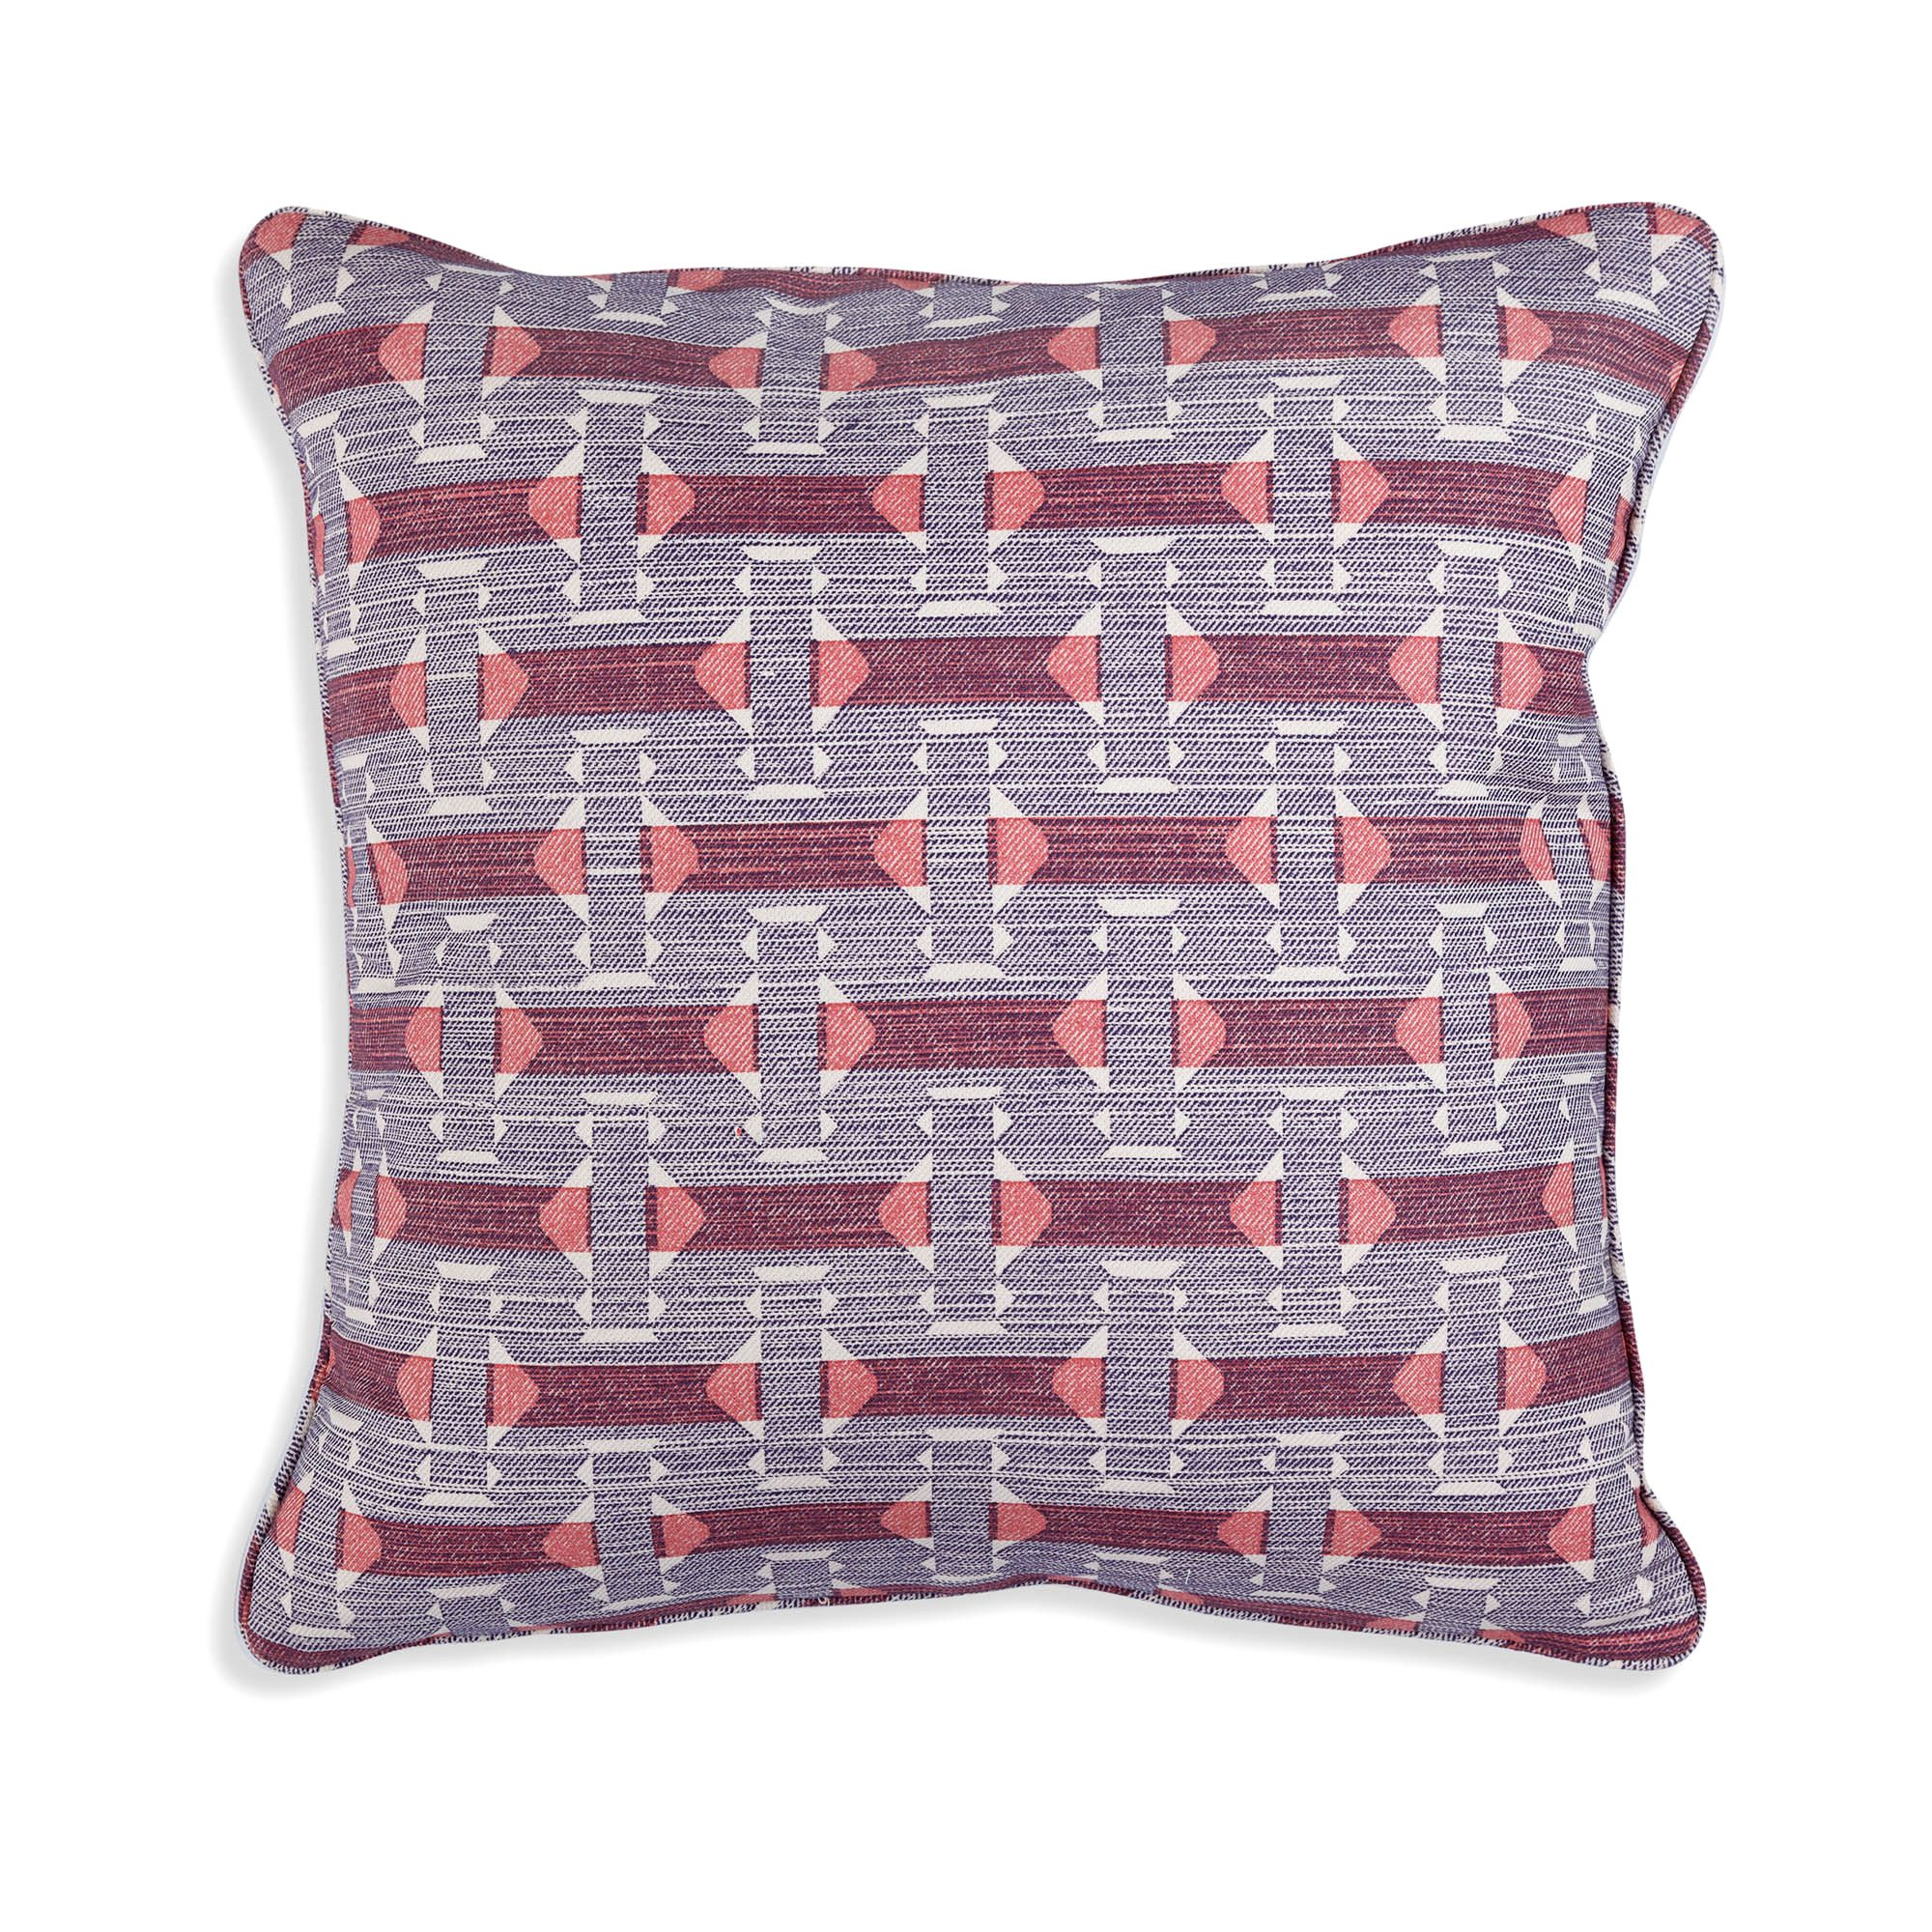 Small Square Cushion in Blue and Red Sicily